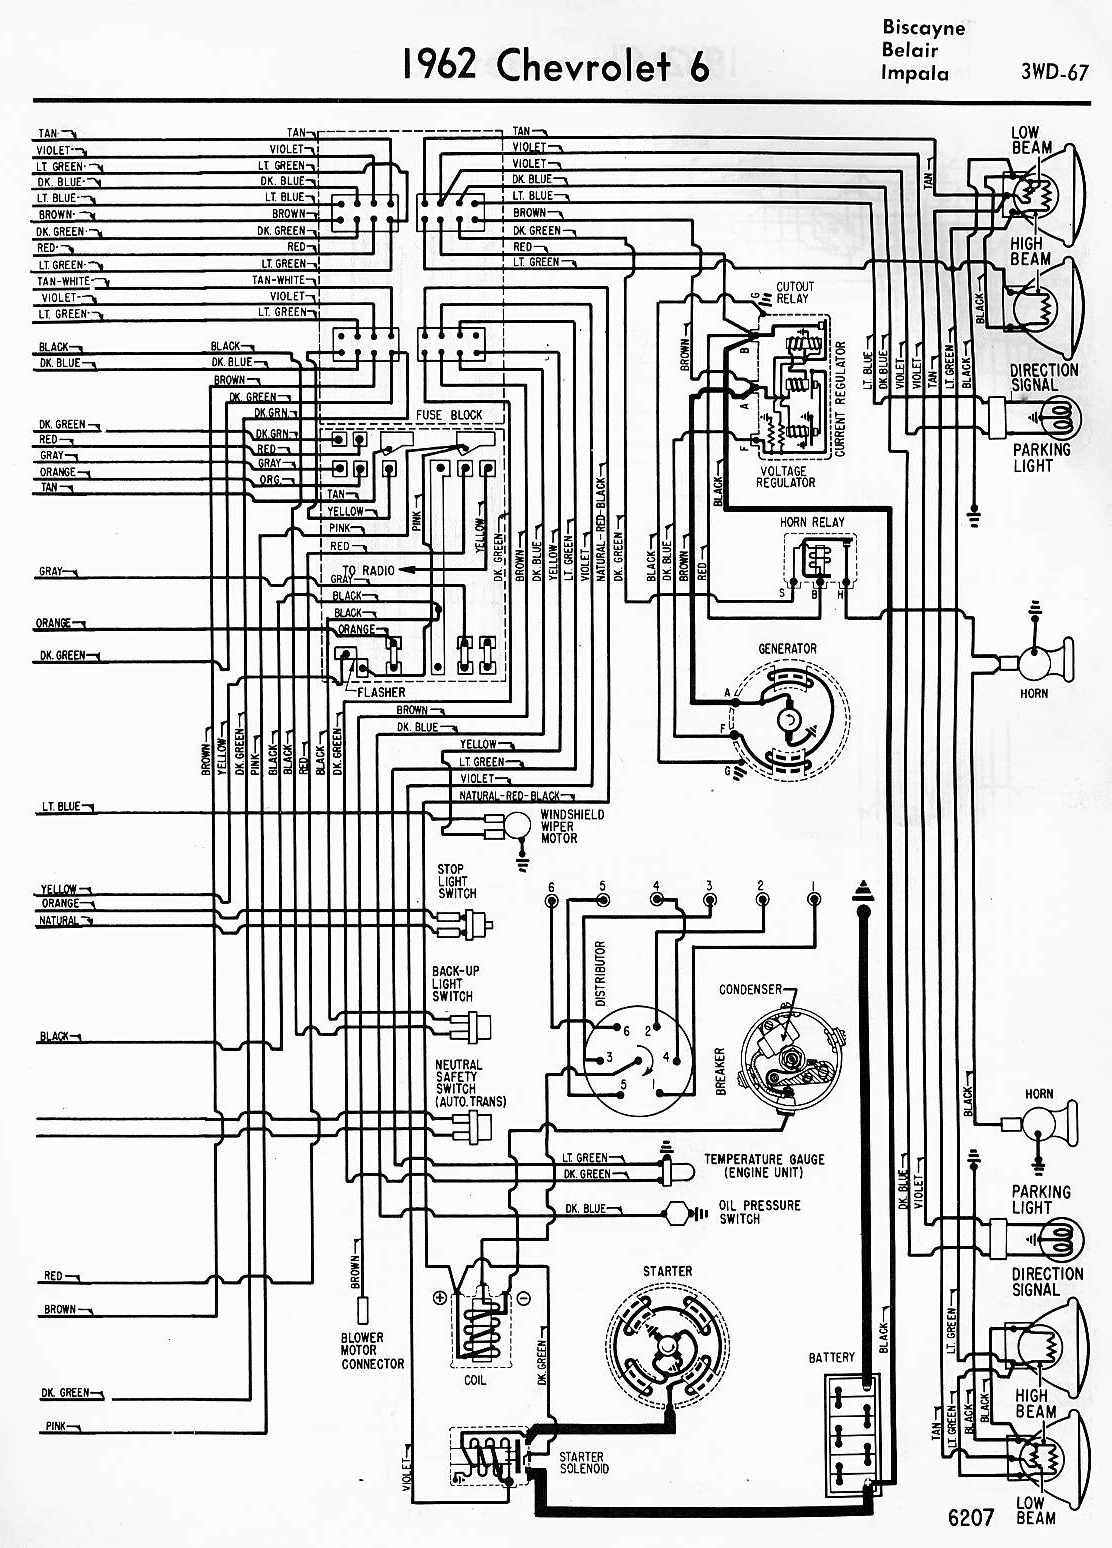 chrysler wiring schematic wiring diagrams description 1963 impala wiring diagram 1963 auto wiring diagram schematic on 1964 chrysler wiring schematic